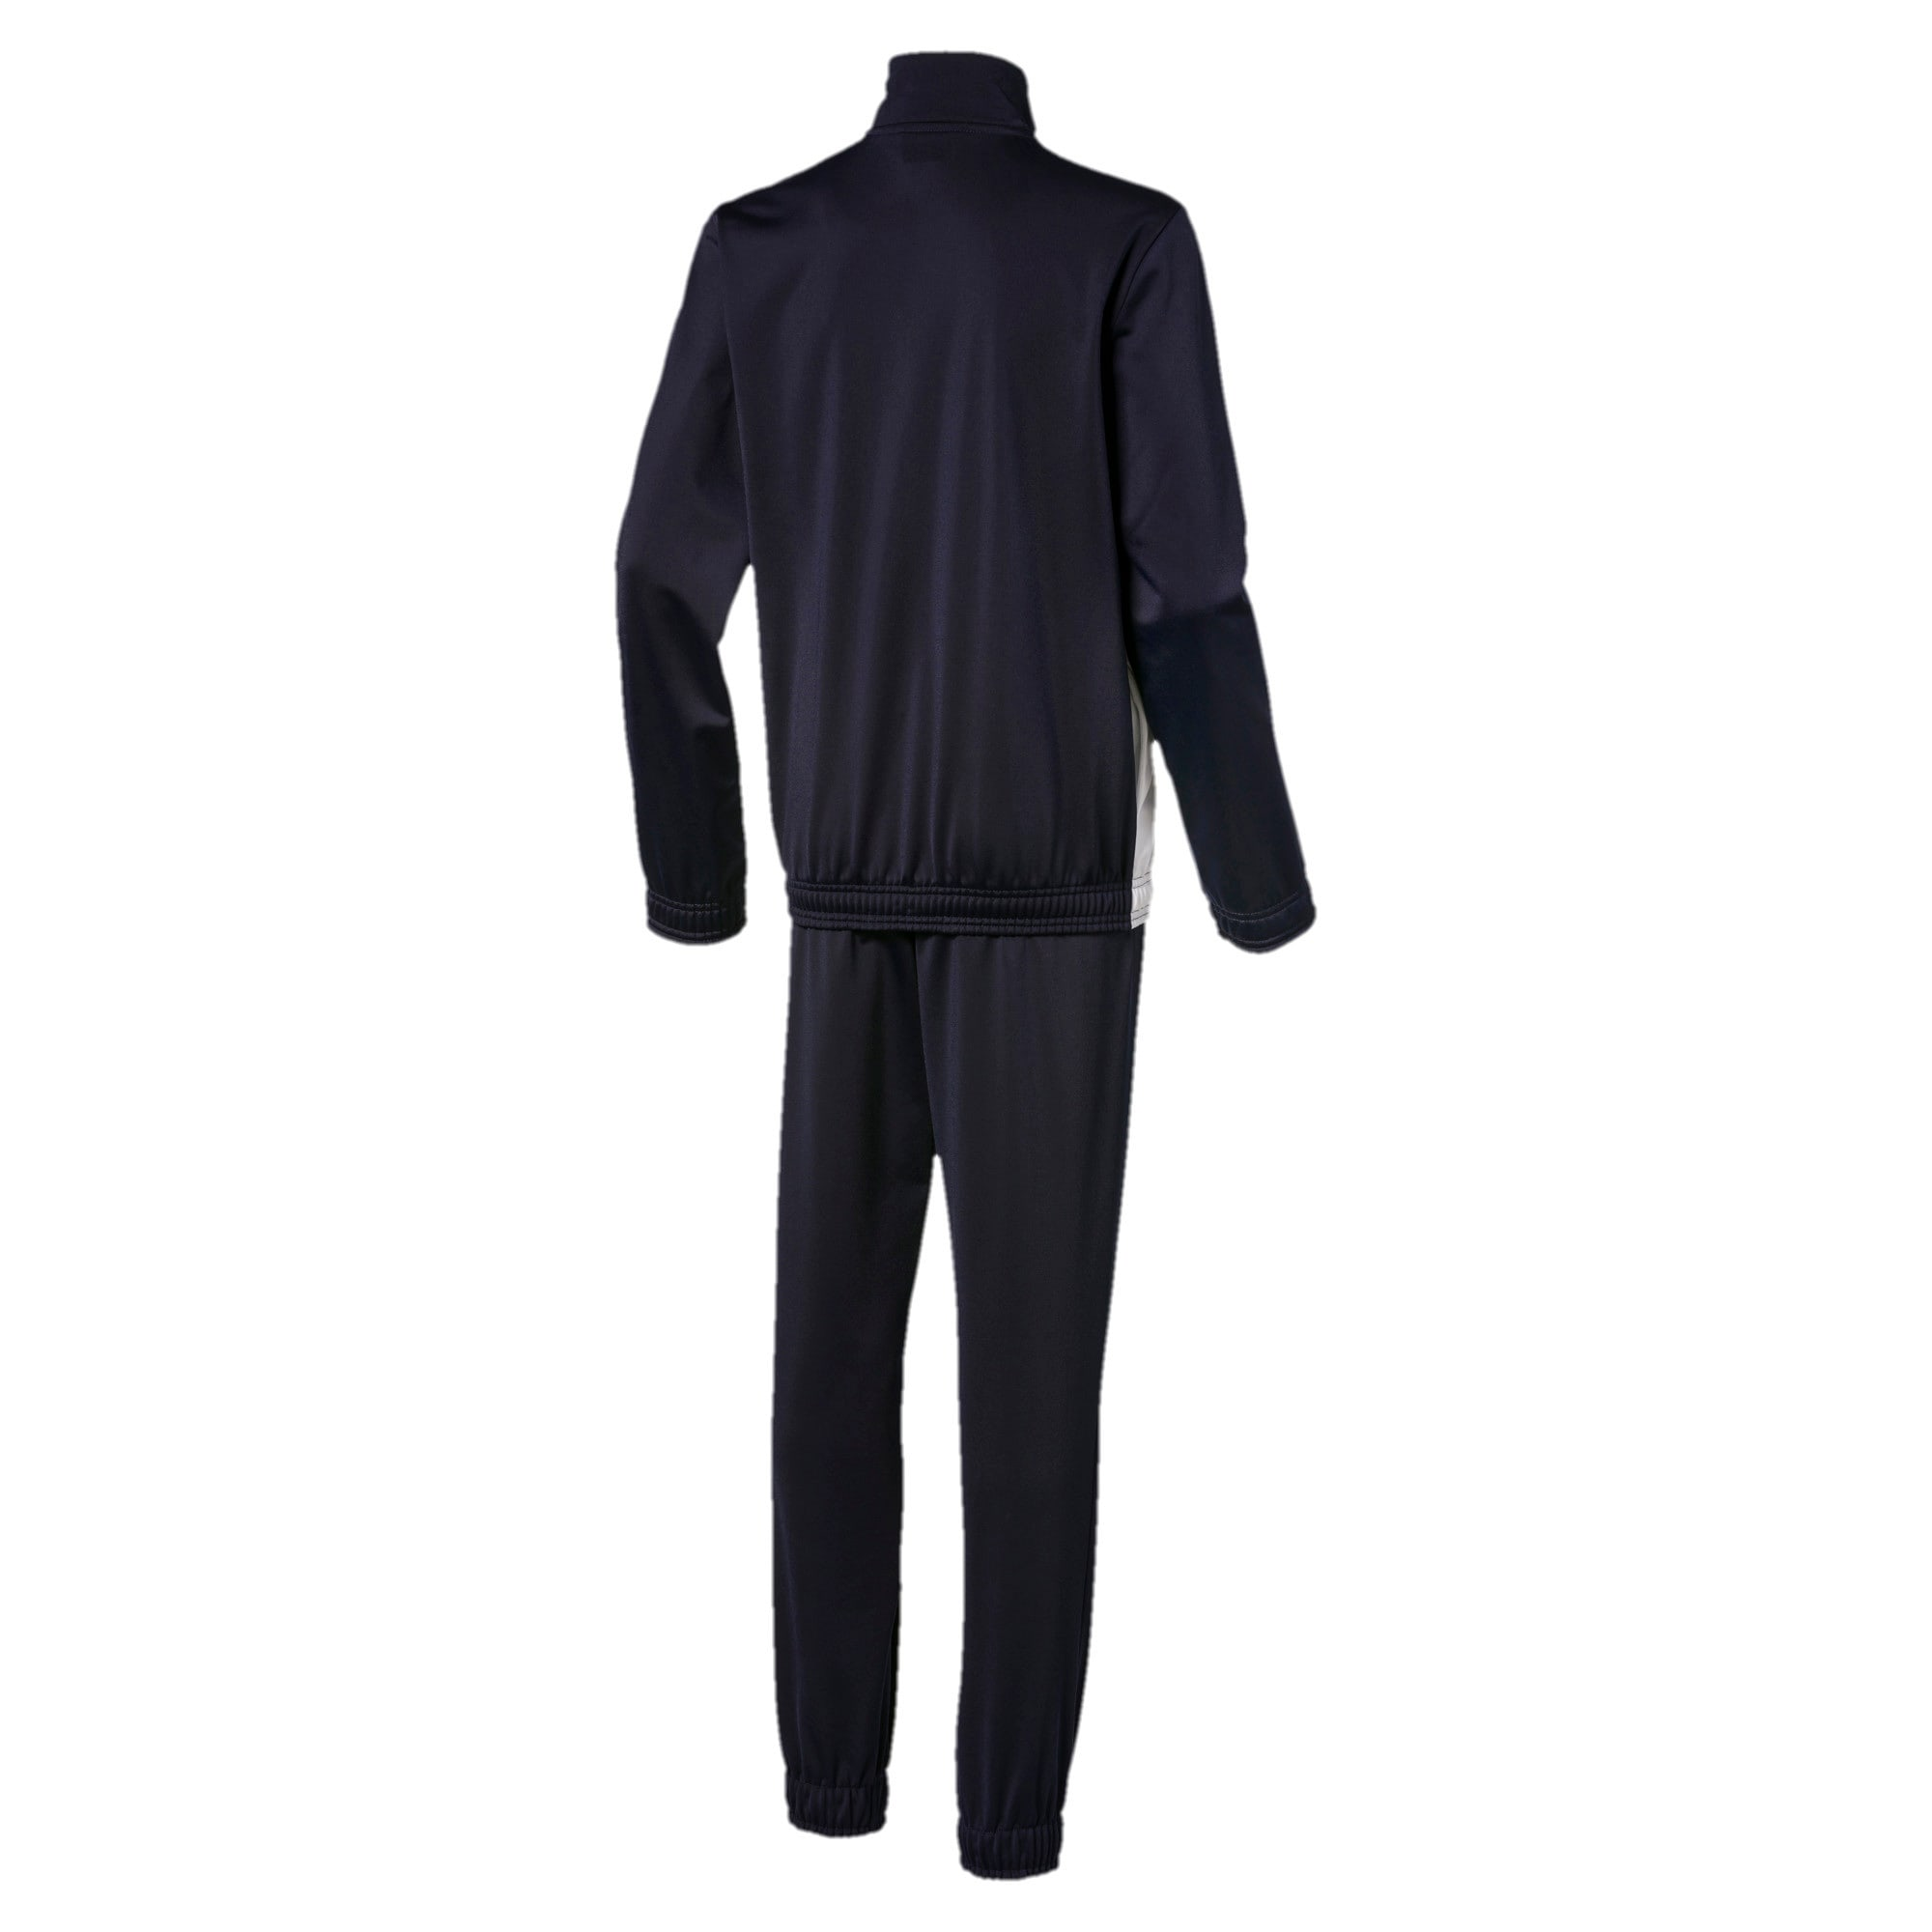 Thumbnail 2 of Tricot I Boys' Track Suit, Peacoat, medium